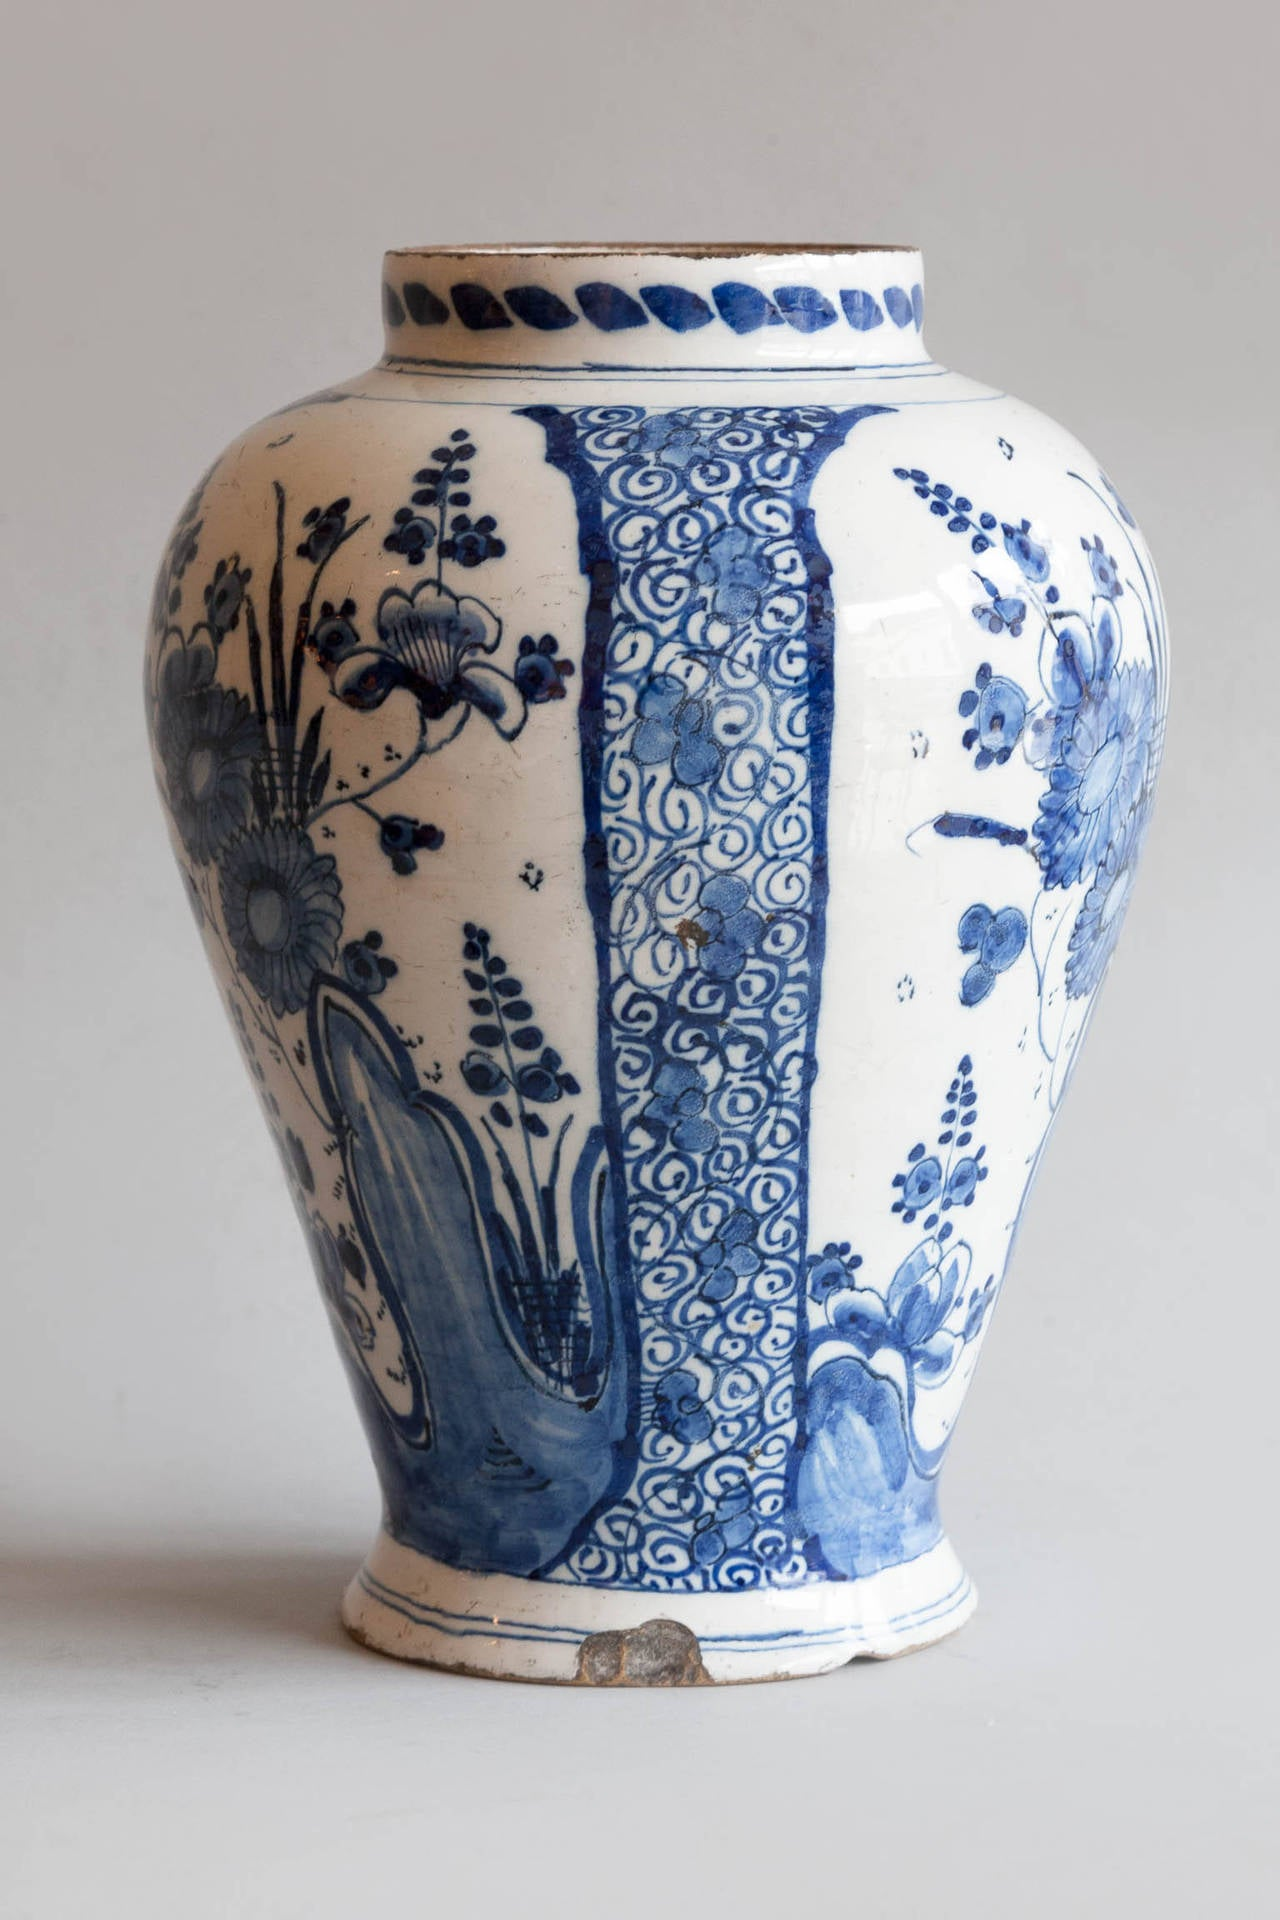 18th century faence baluster delft vase at 1stdibs decorated with flowers and leafy branches in blue and white on a milky white background reviewsmspy